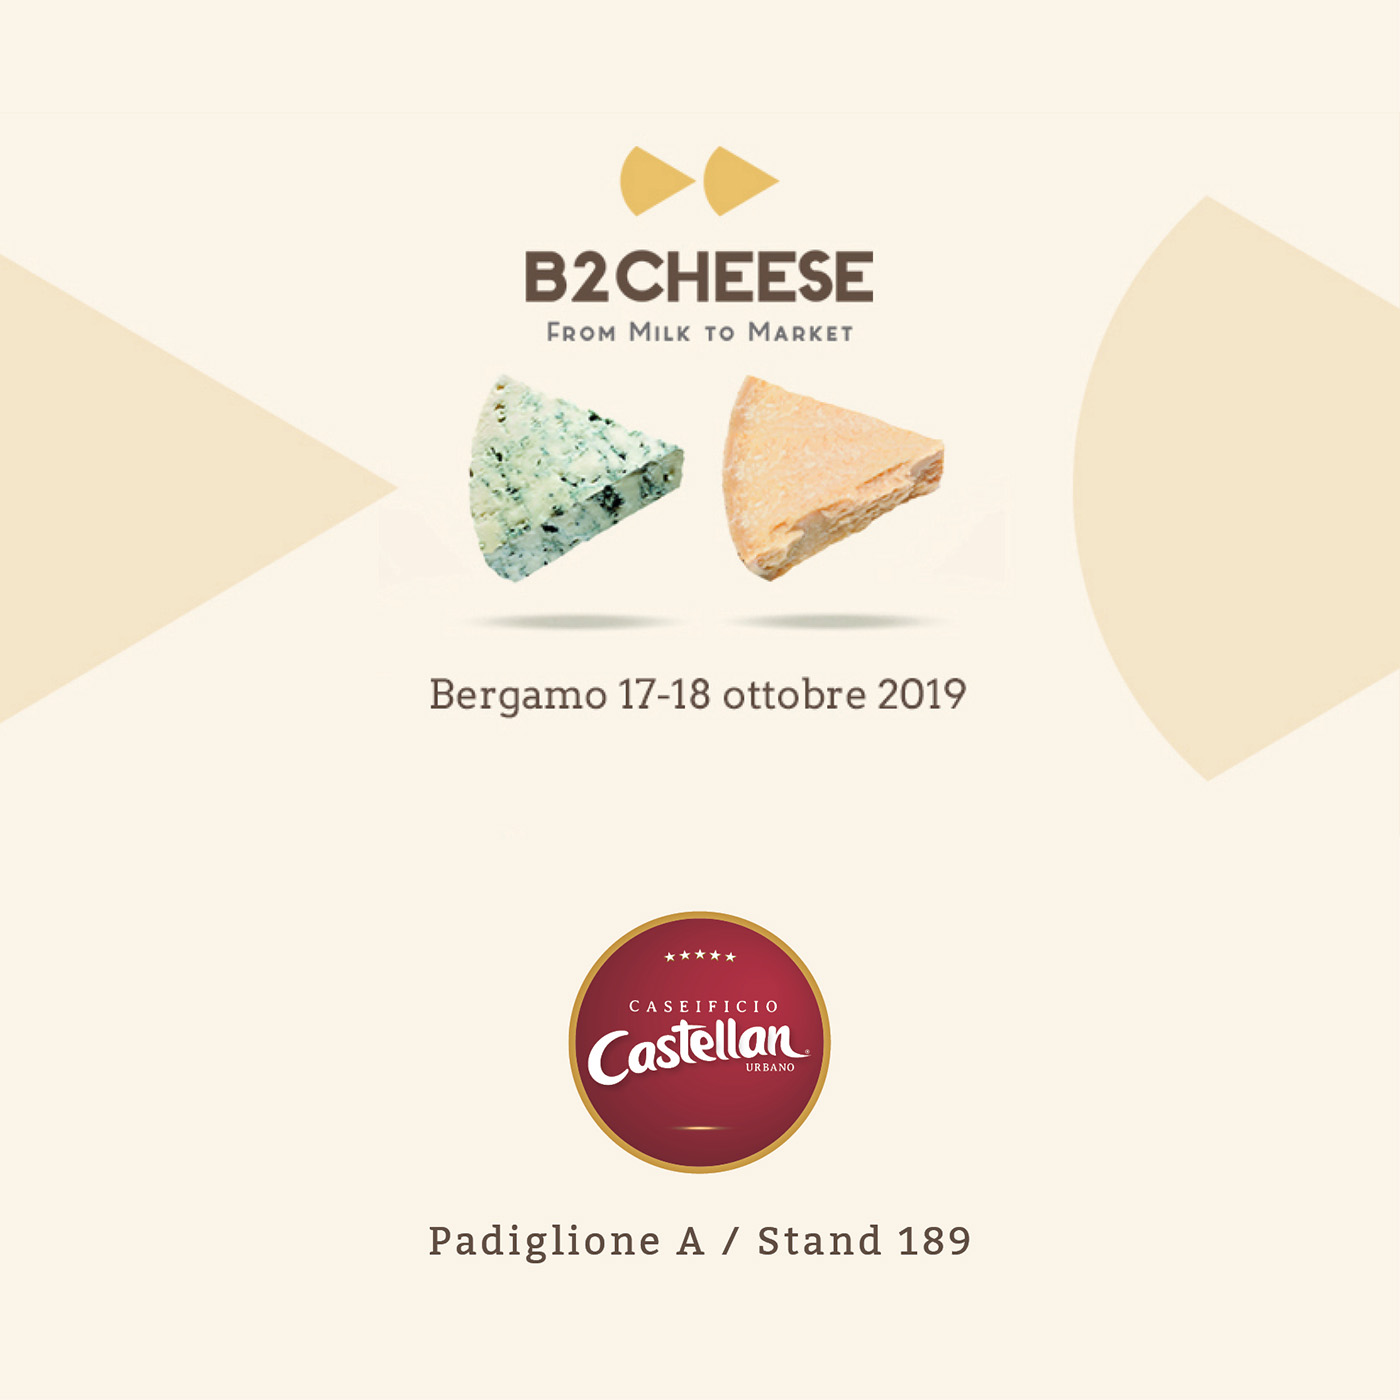 Caseificio Castellan B2Cheese 2019